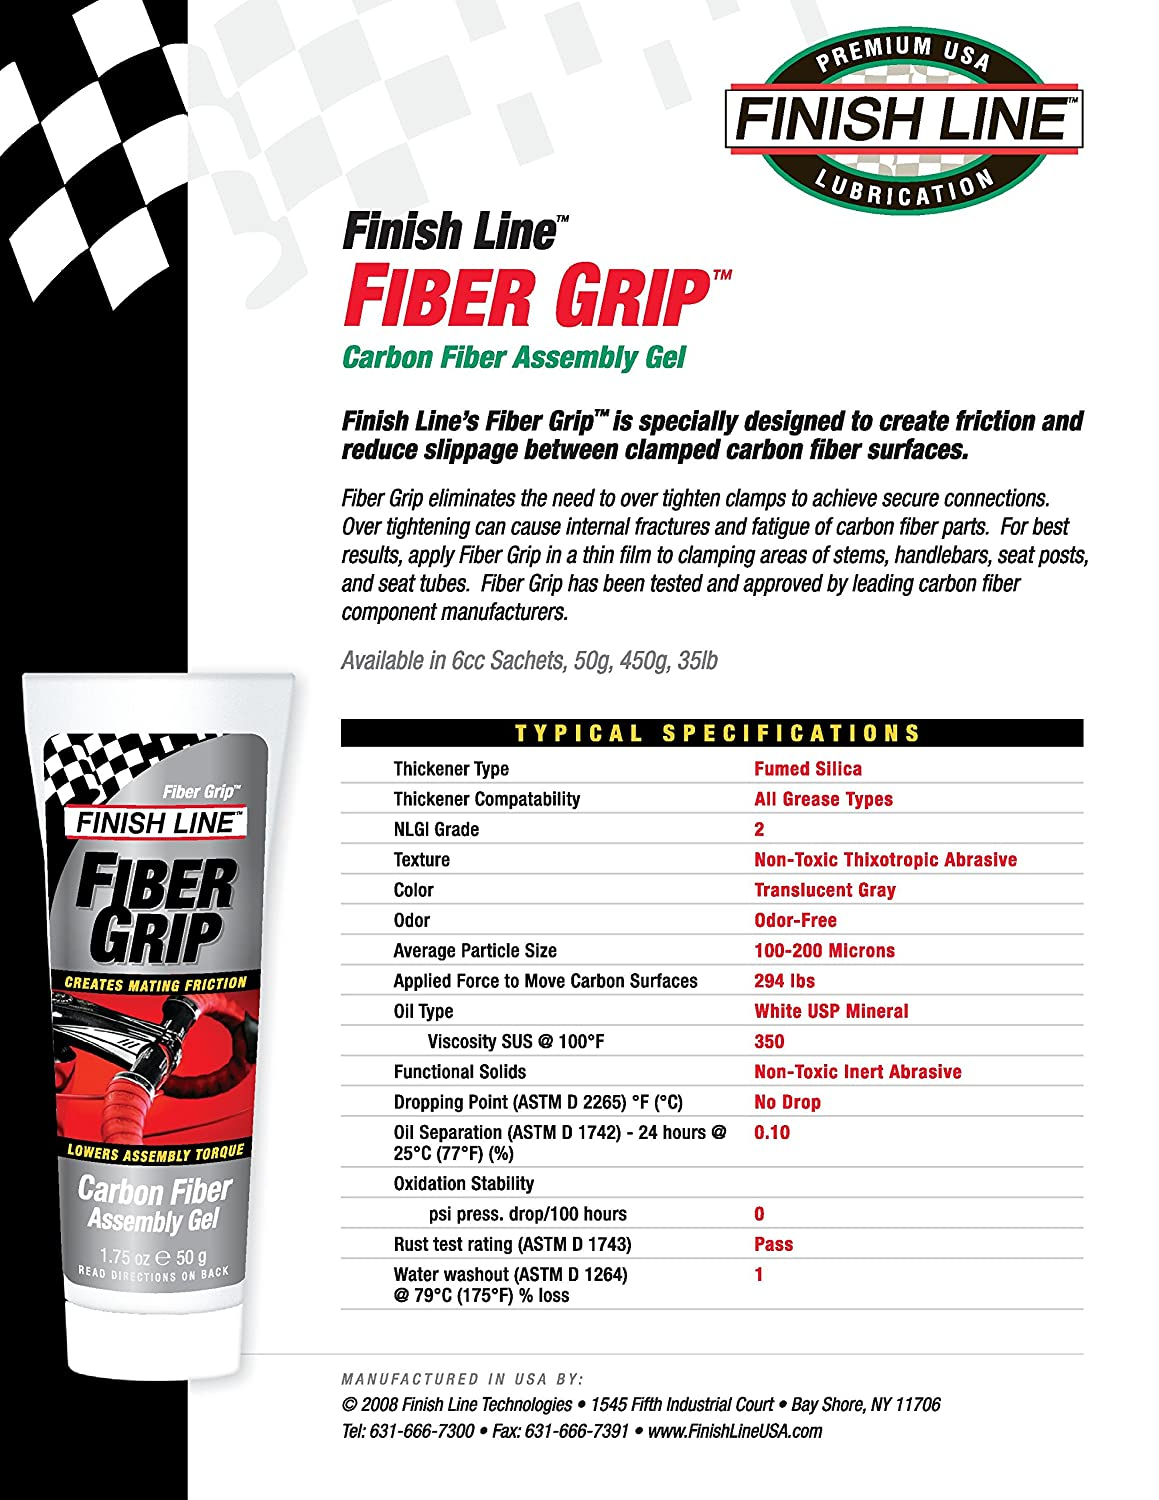 Finish Line Free Shipping Trick >> Finish Line Fiber Grip Carbon Fiber Bicycle Assembly Gel